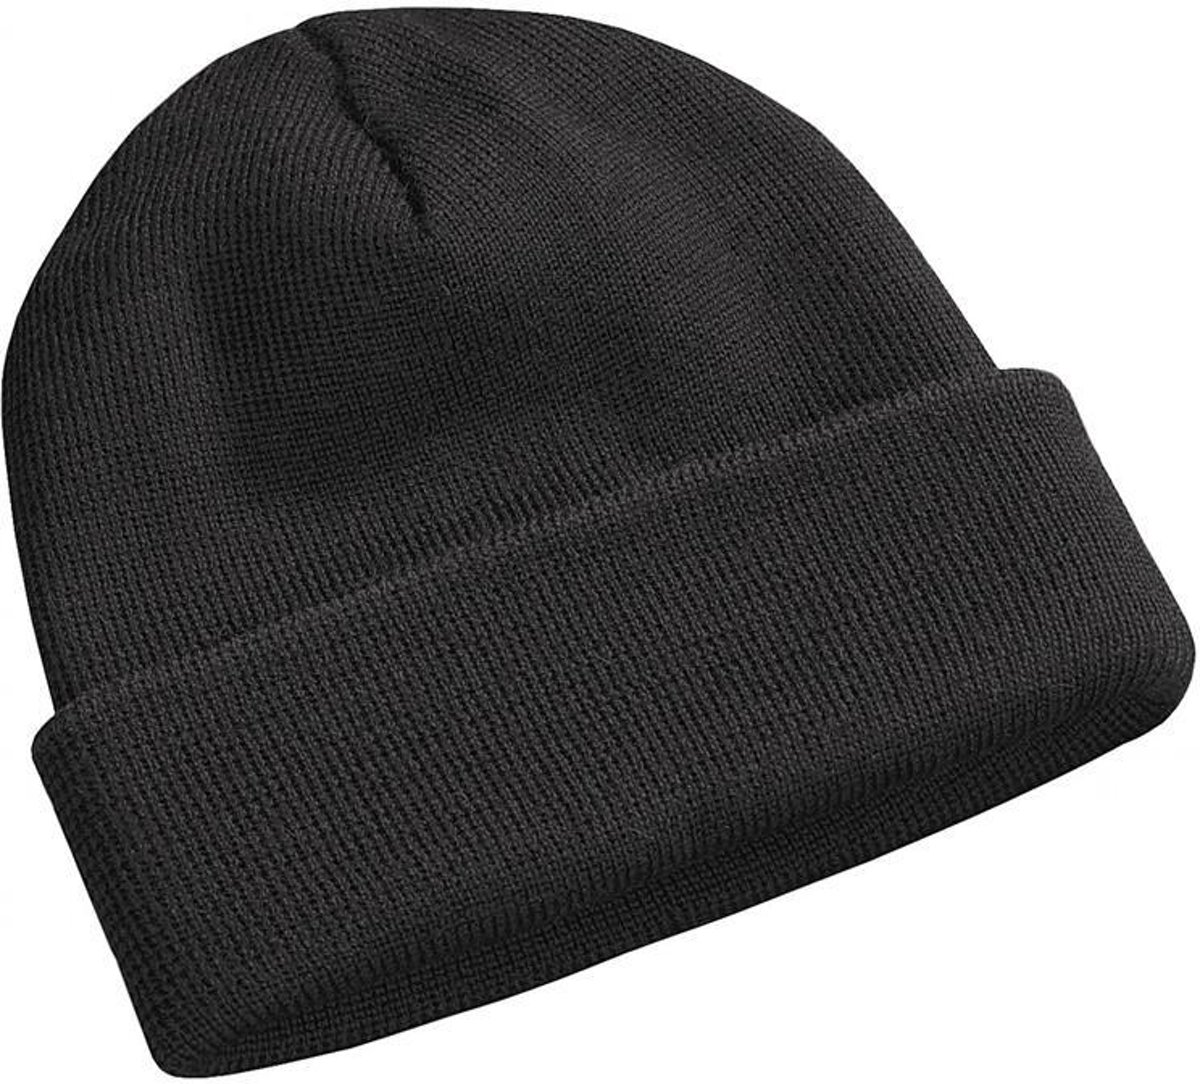 Beanie Muts Fleece Klein - Unisex - One Size